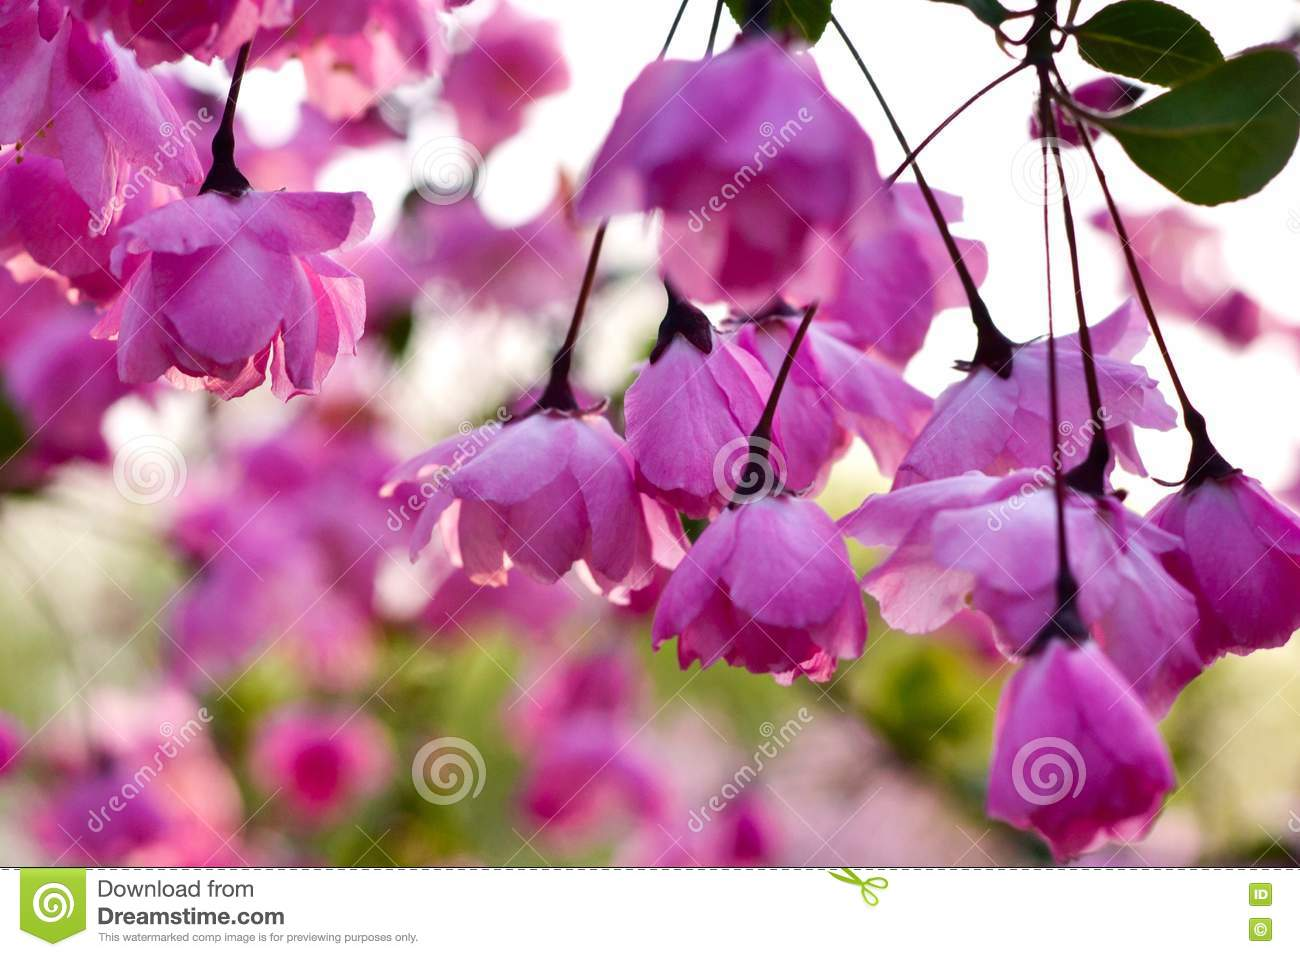 Pink hanging flowers stock photo image of flowering 71887262 download pink hanging flowers stock photo image of flowering 71887262 mightylinksfo